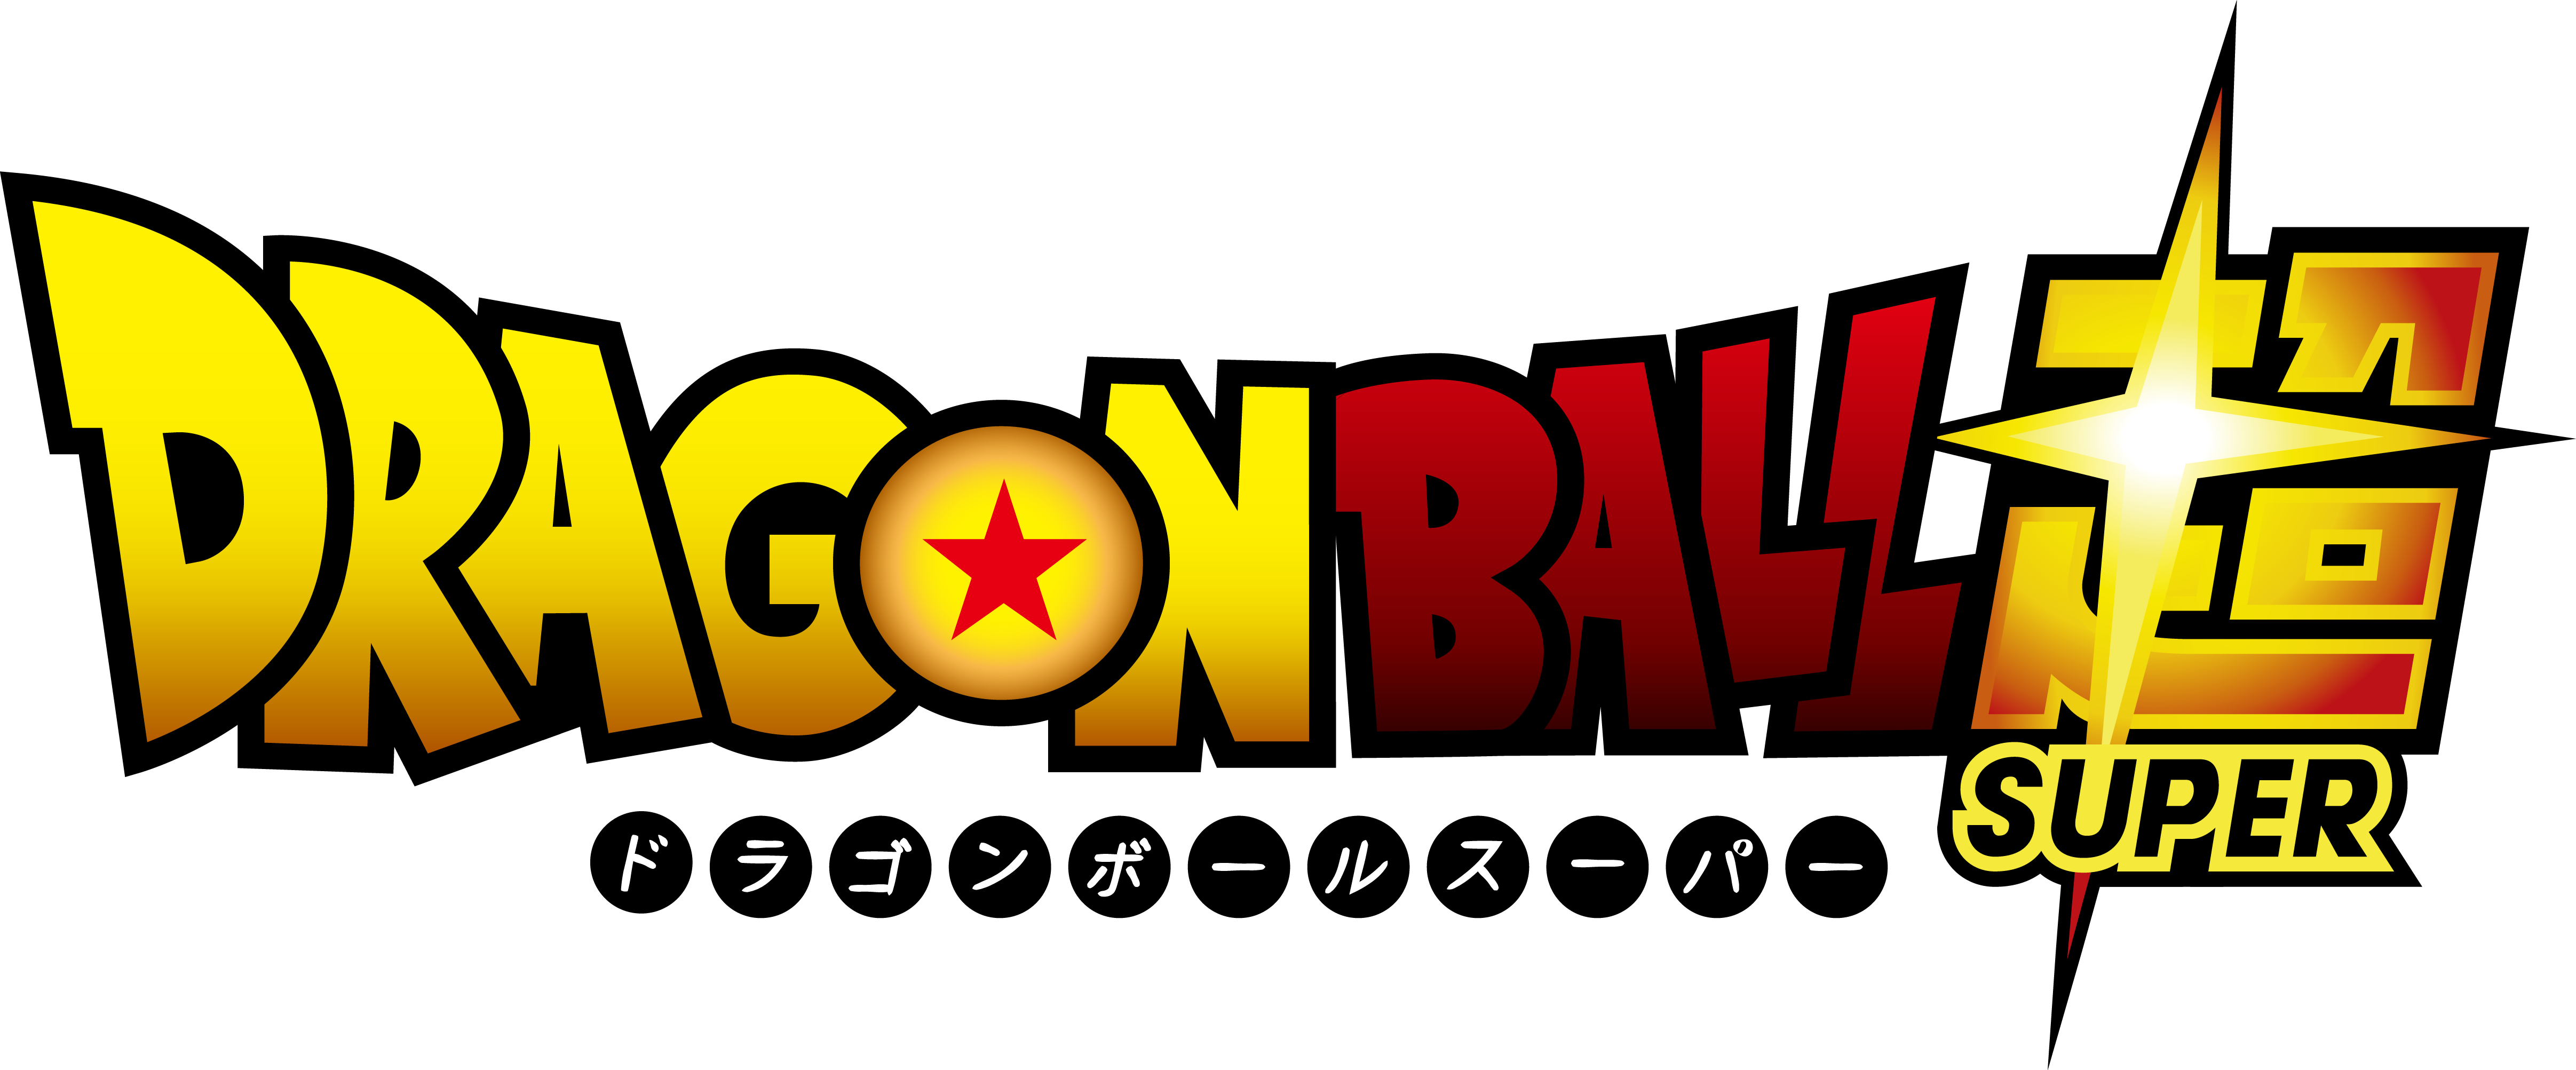 dragon_ball_super_logo_by_darcklp-d93gk4r.png